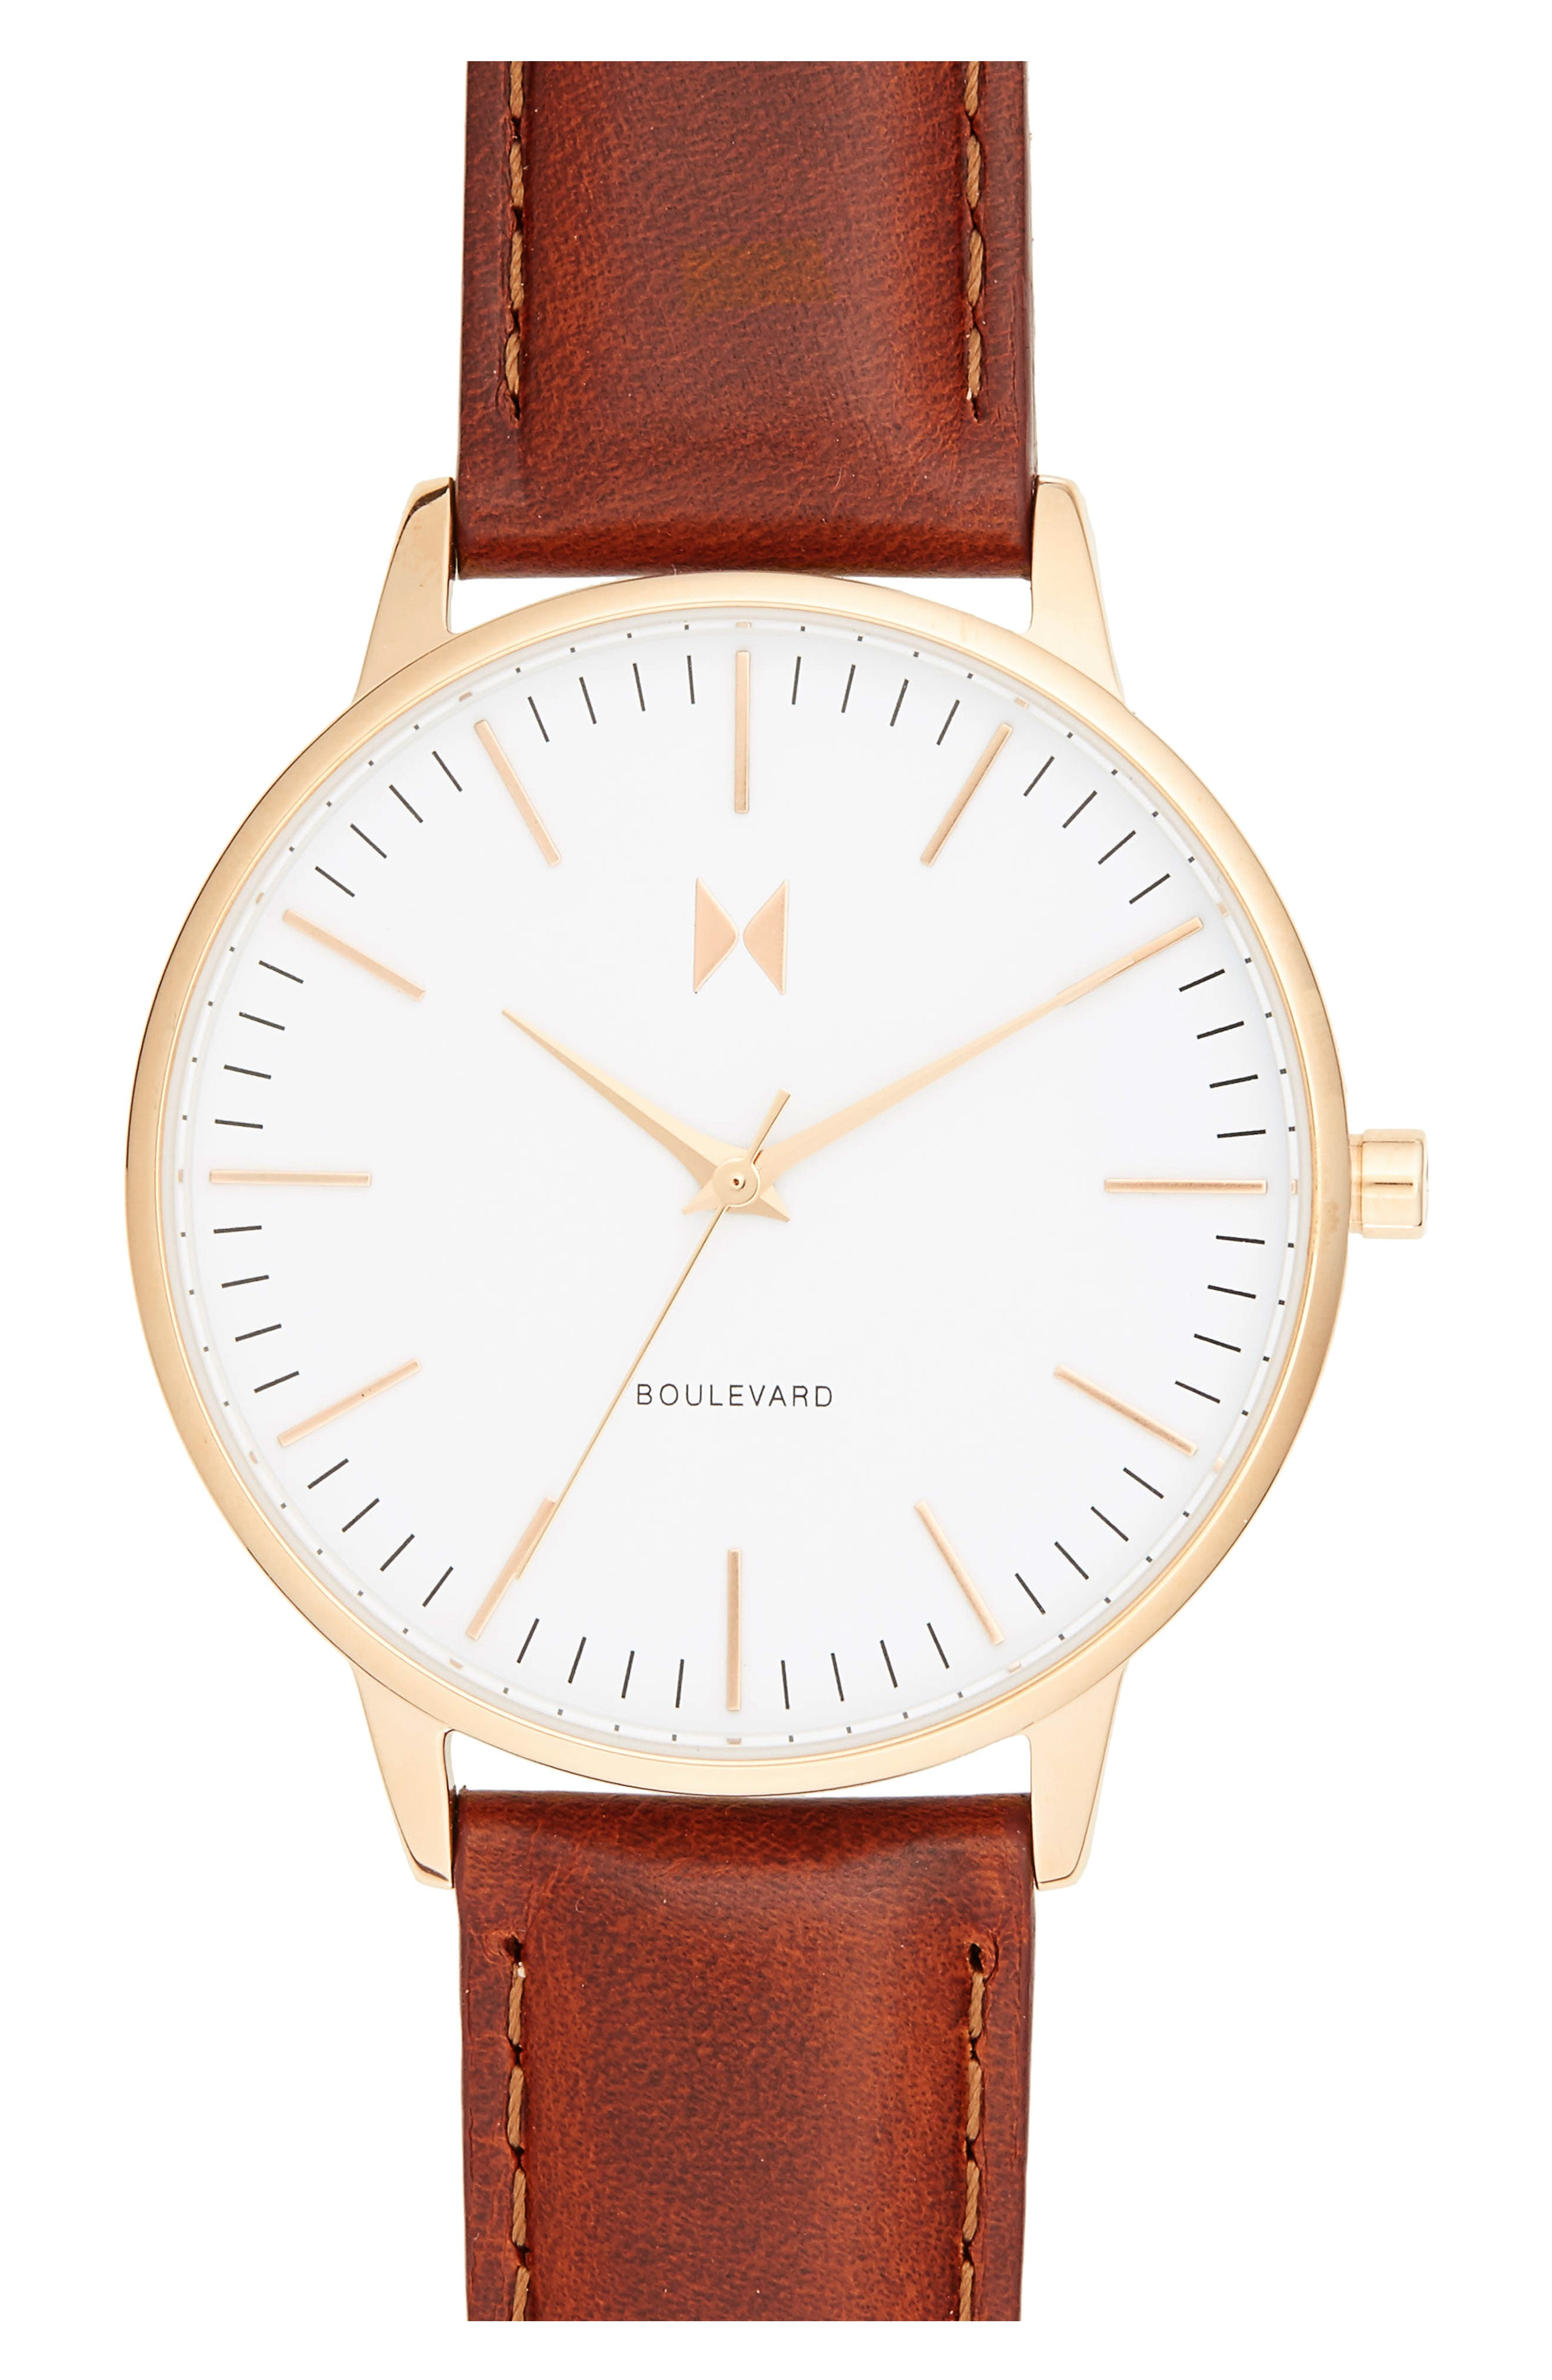 Boulevard Leather Strap Watch, 38mm,                         Main,                         color, Brown/ White/ Gold